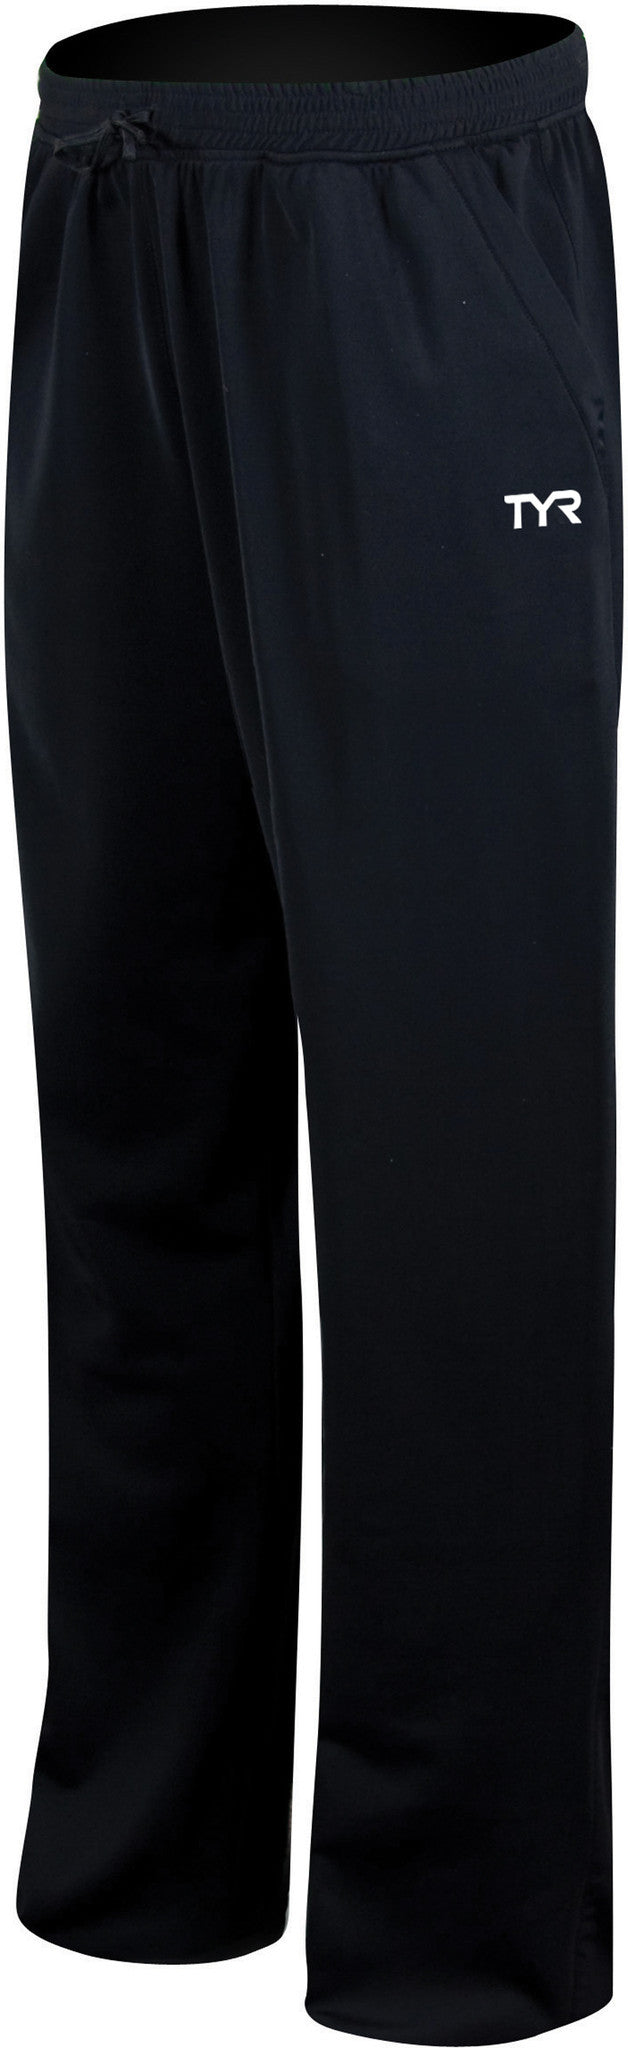 TYR Sport Men's Alliance Victory Warm Up Pants